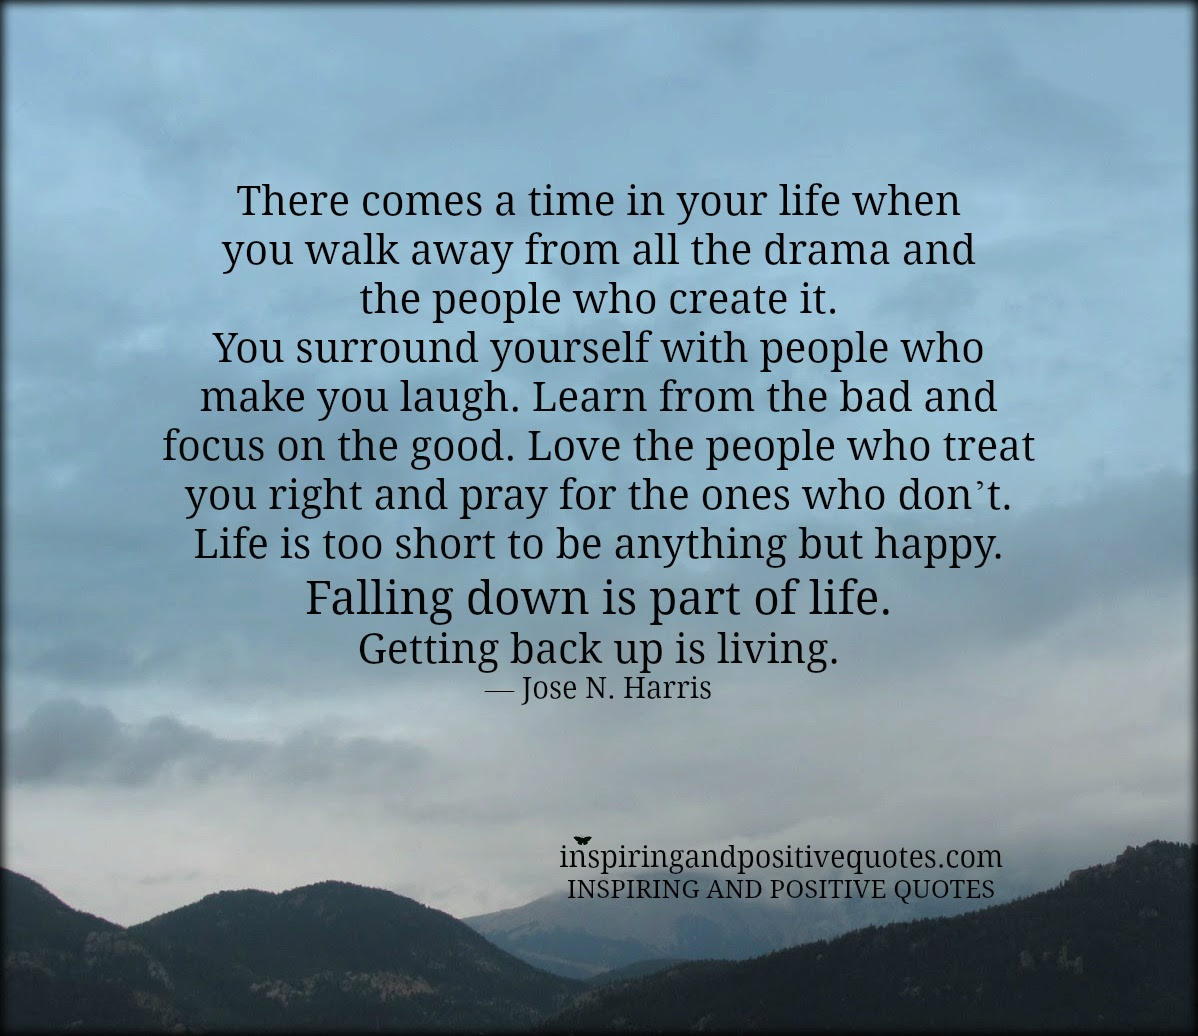 There Comes A Time In Your Life Inspiring And Positive Quotes